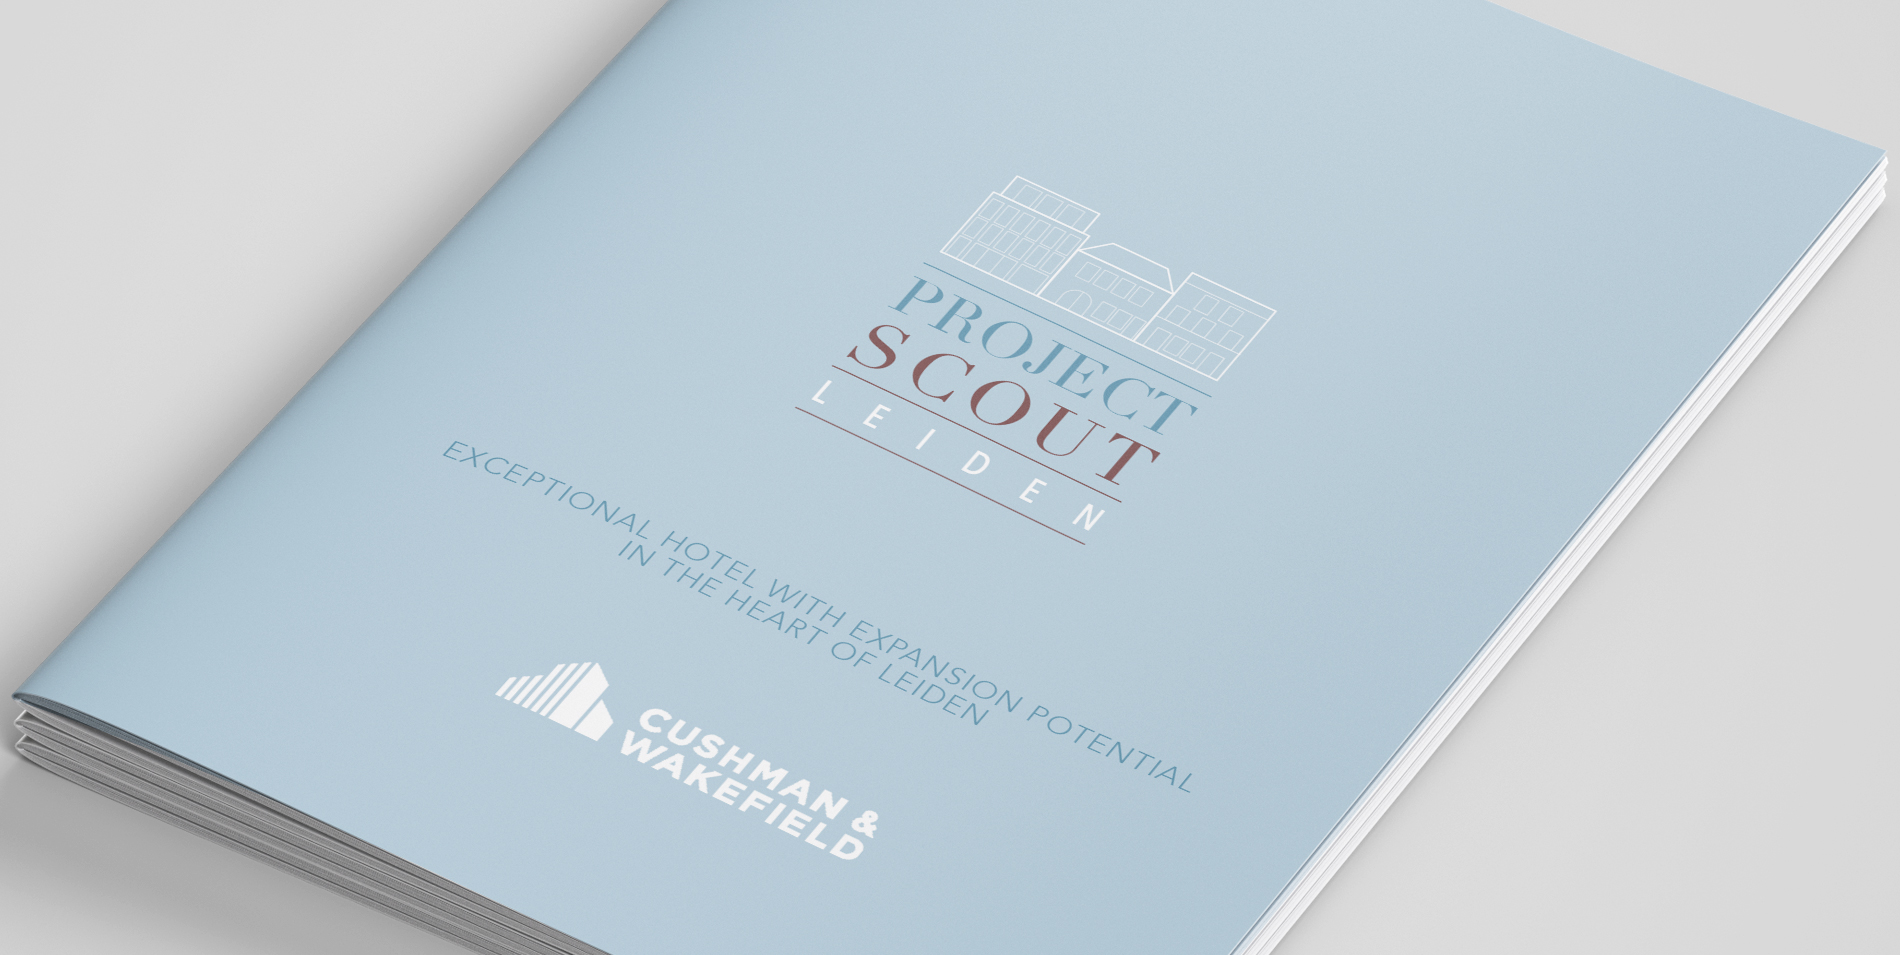 PROJECT SCOUT